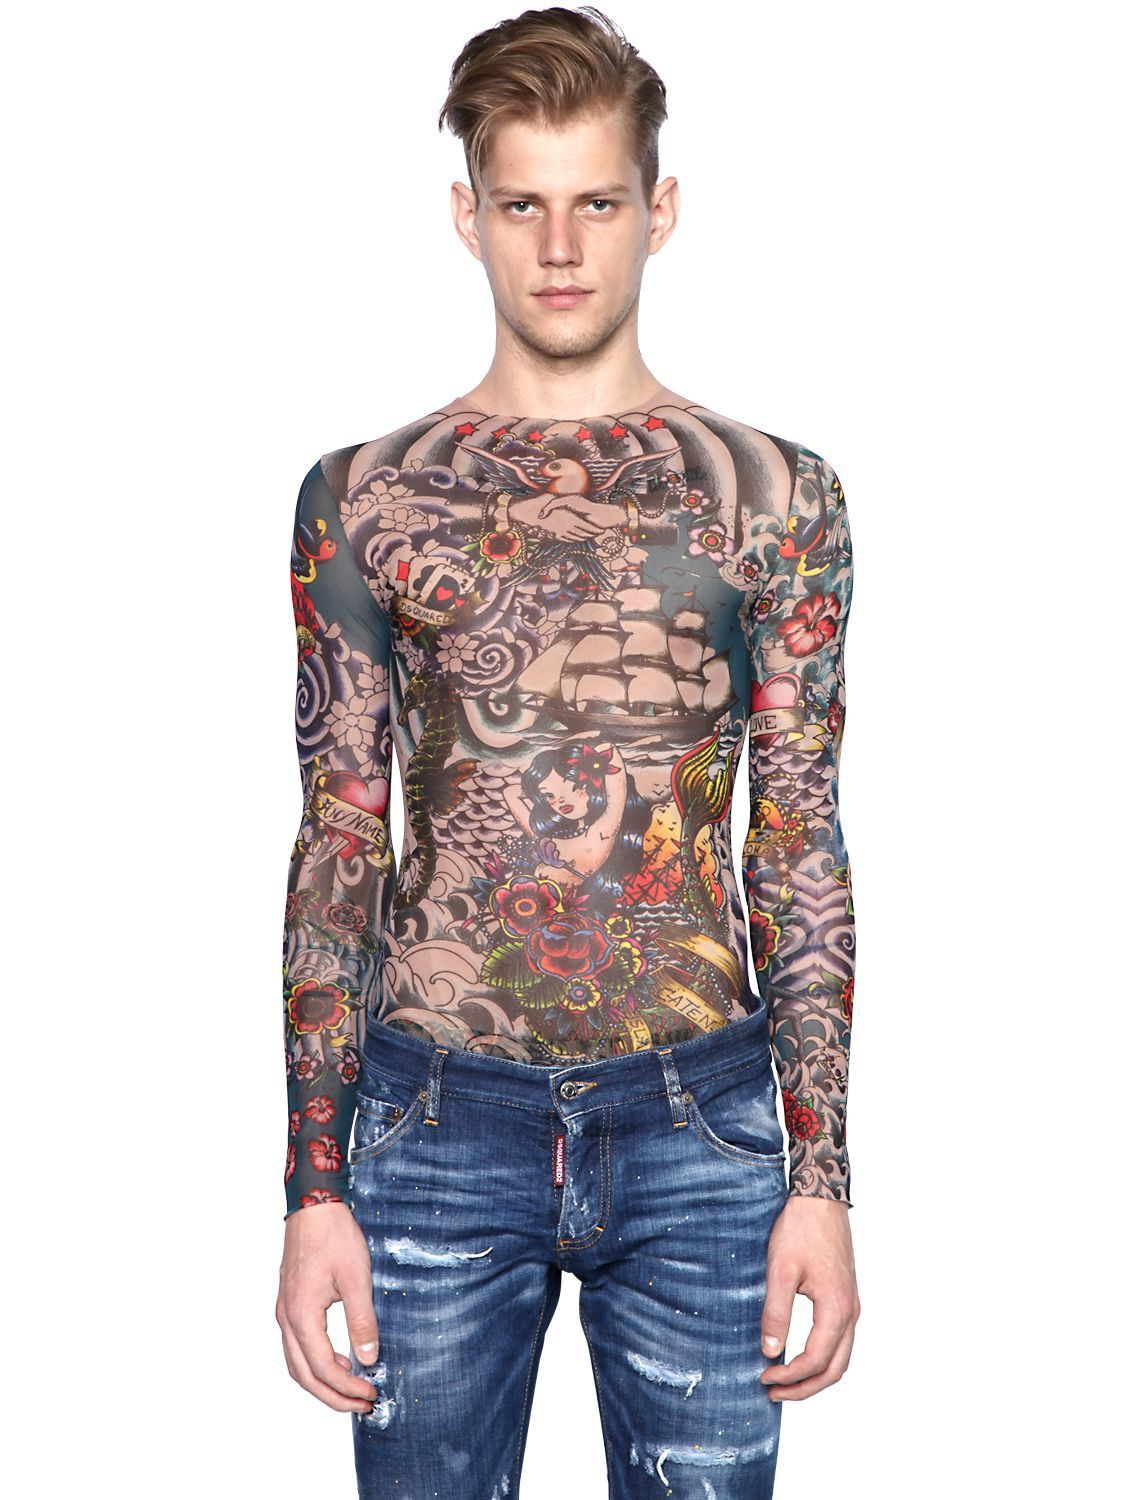 aa242952ed Multicolor Tattoo Printed Sheer Long Sleeve T-shirt for Men